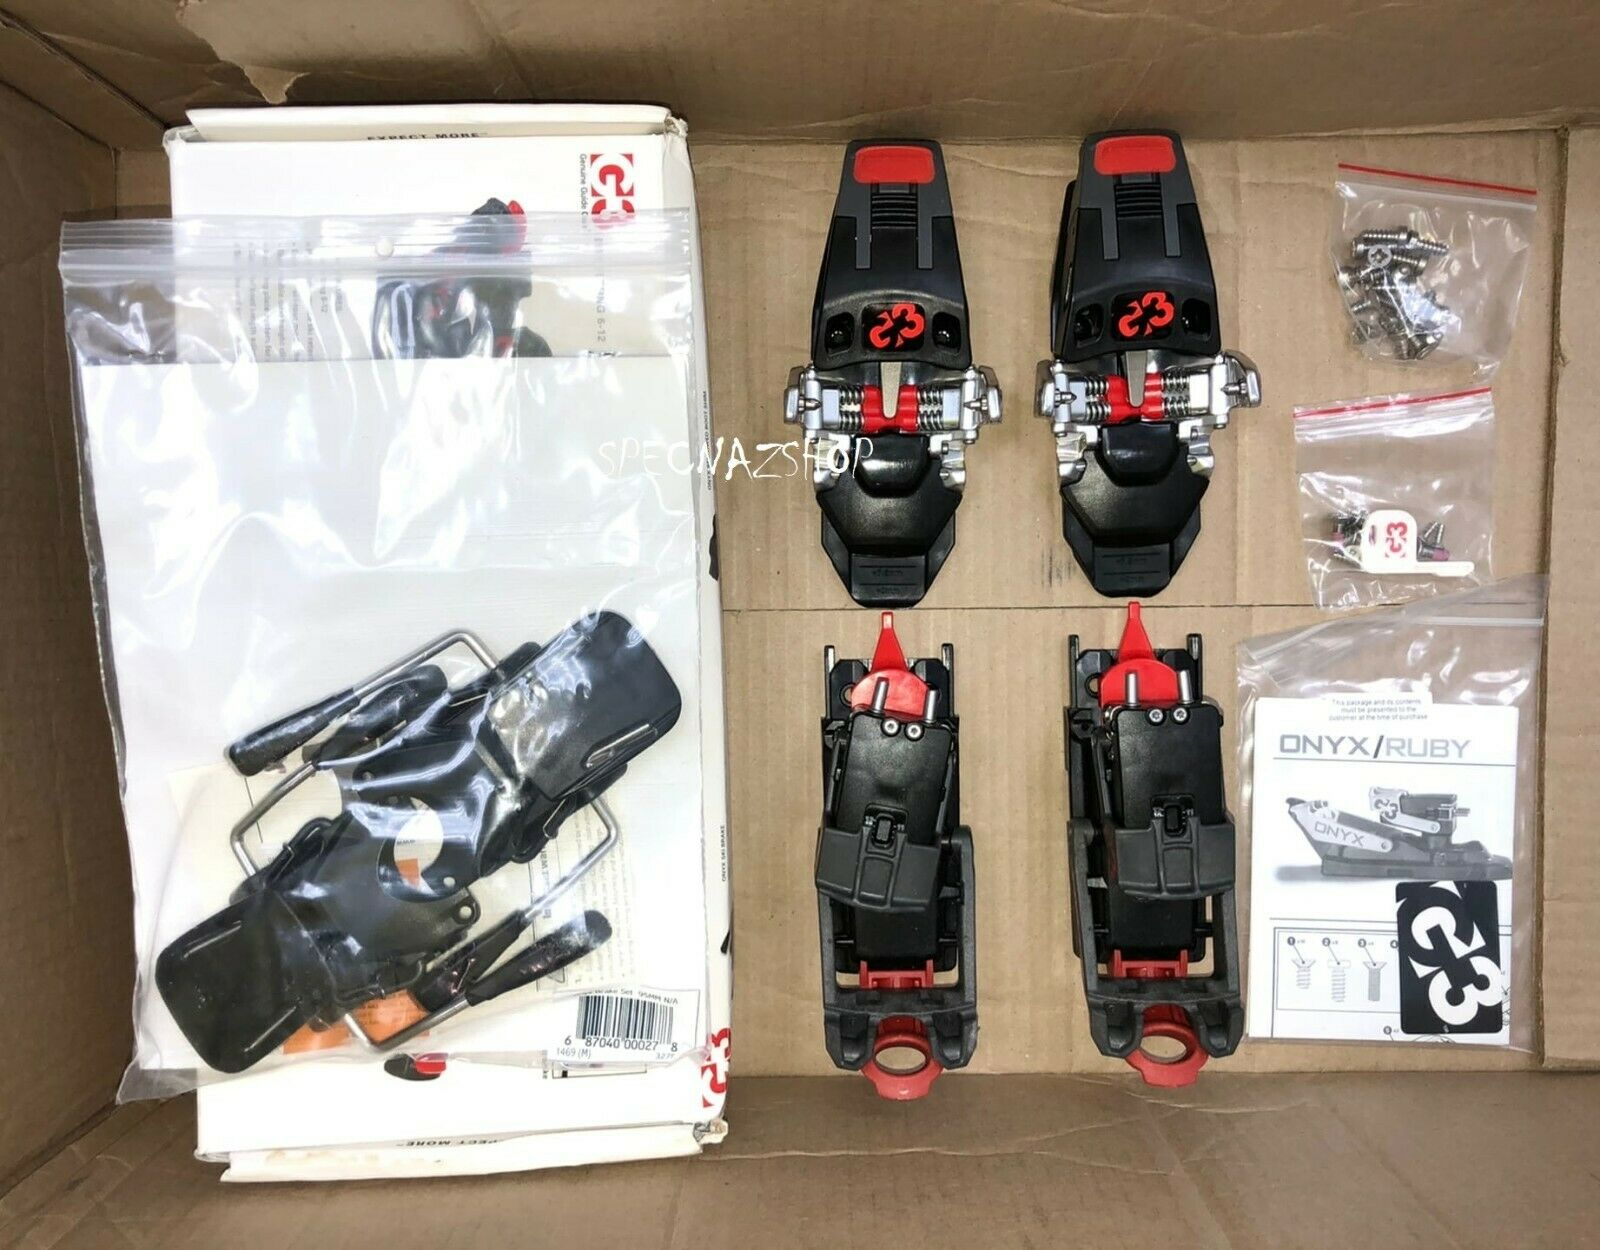 как выглядит G3 Onyx Alpine Touring Bindings with 95mm Ski Breaks from Genuine Guide Gear фото